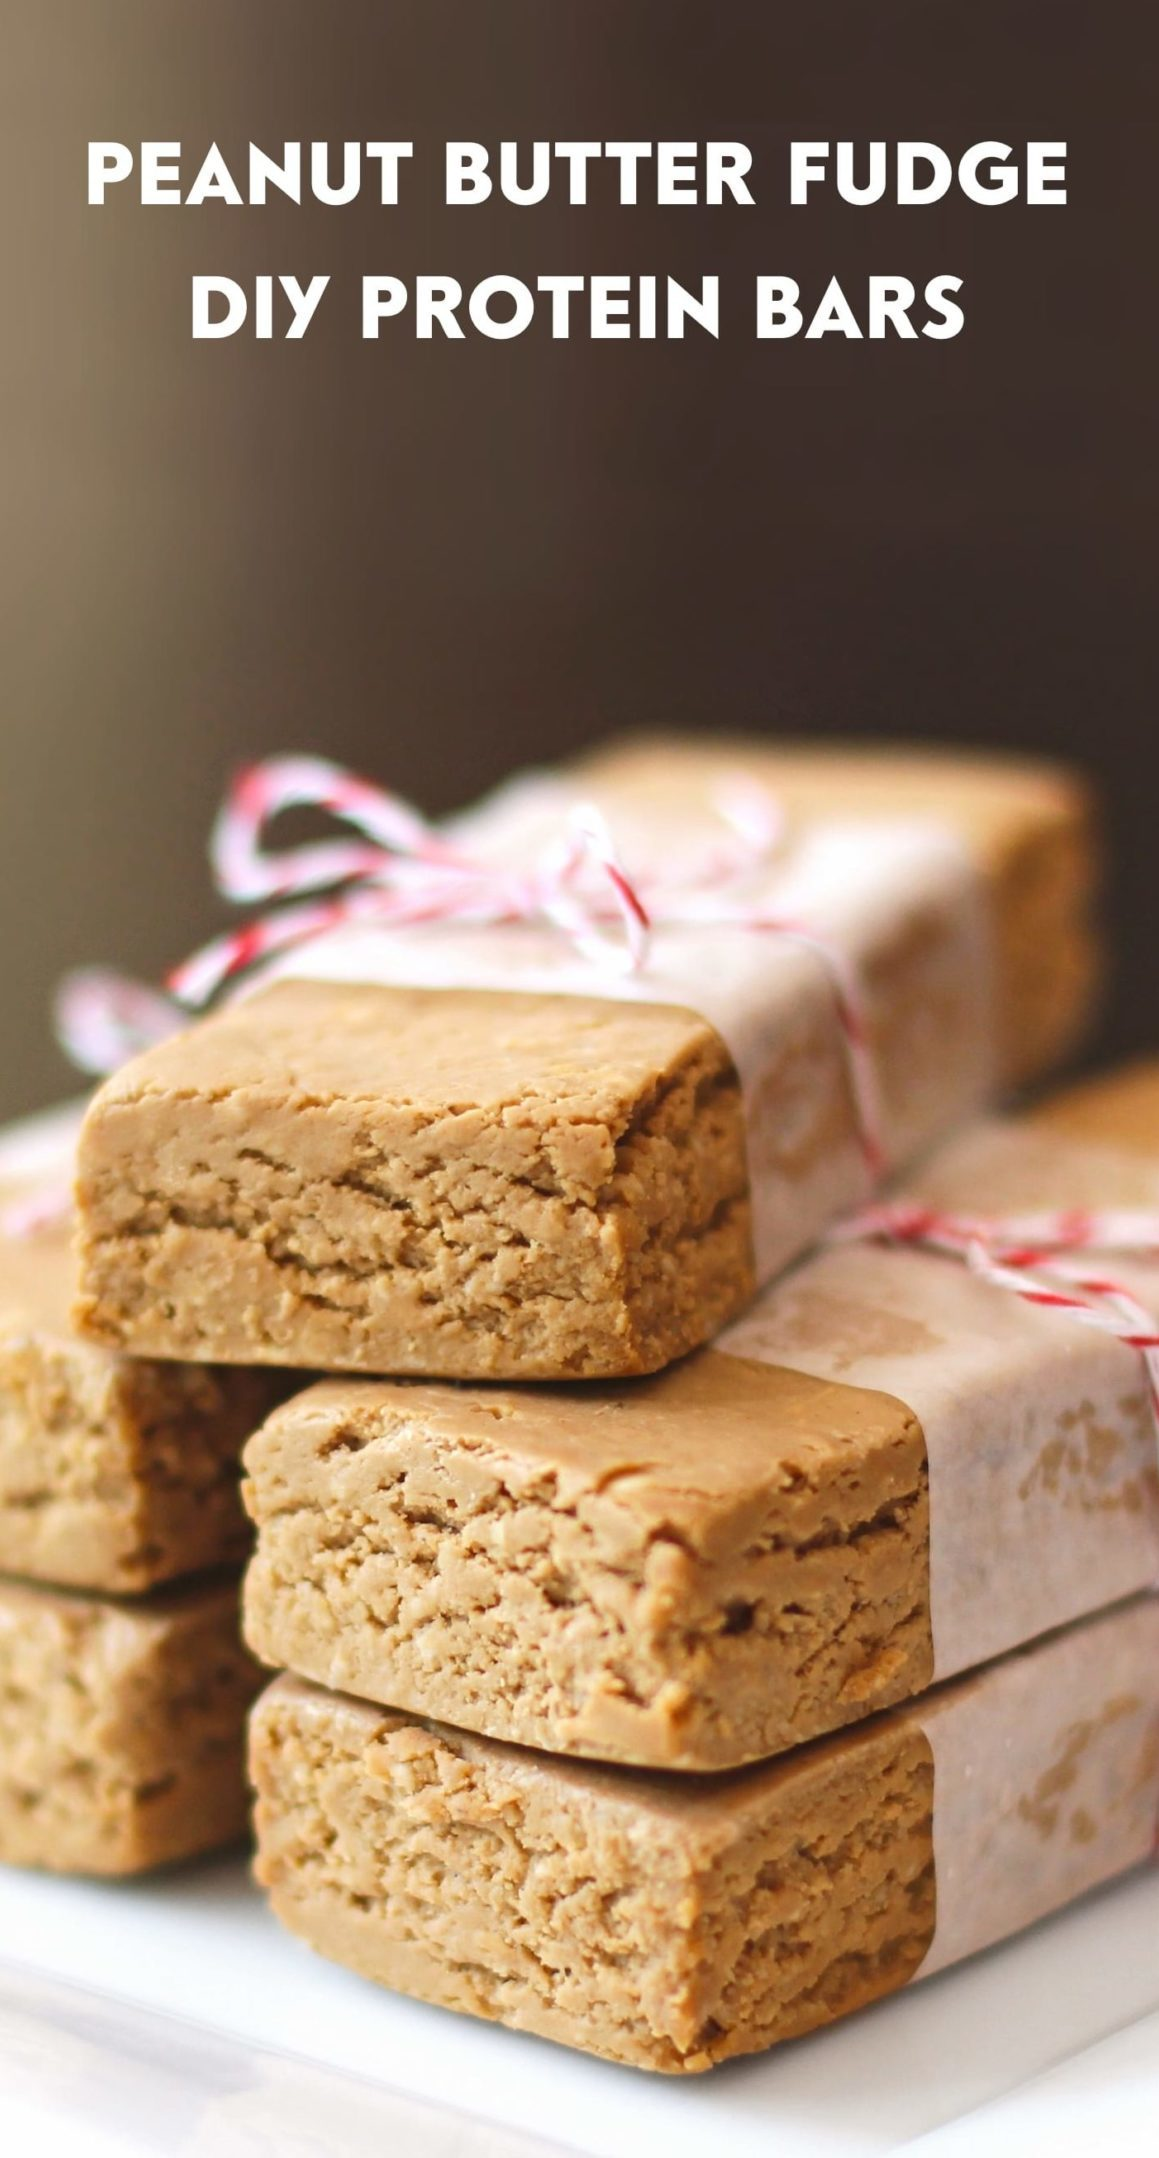 Healthy Peanut Butter Diy Protein Bars From The Diy Protein